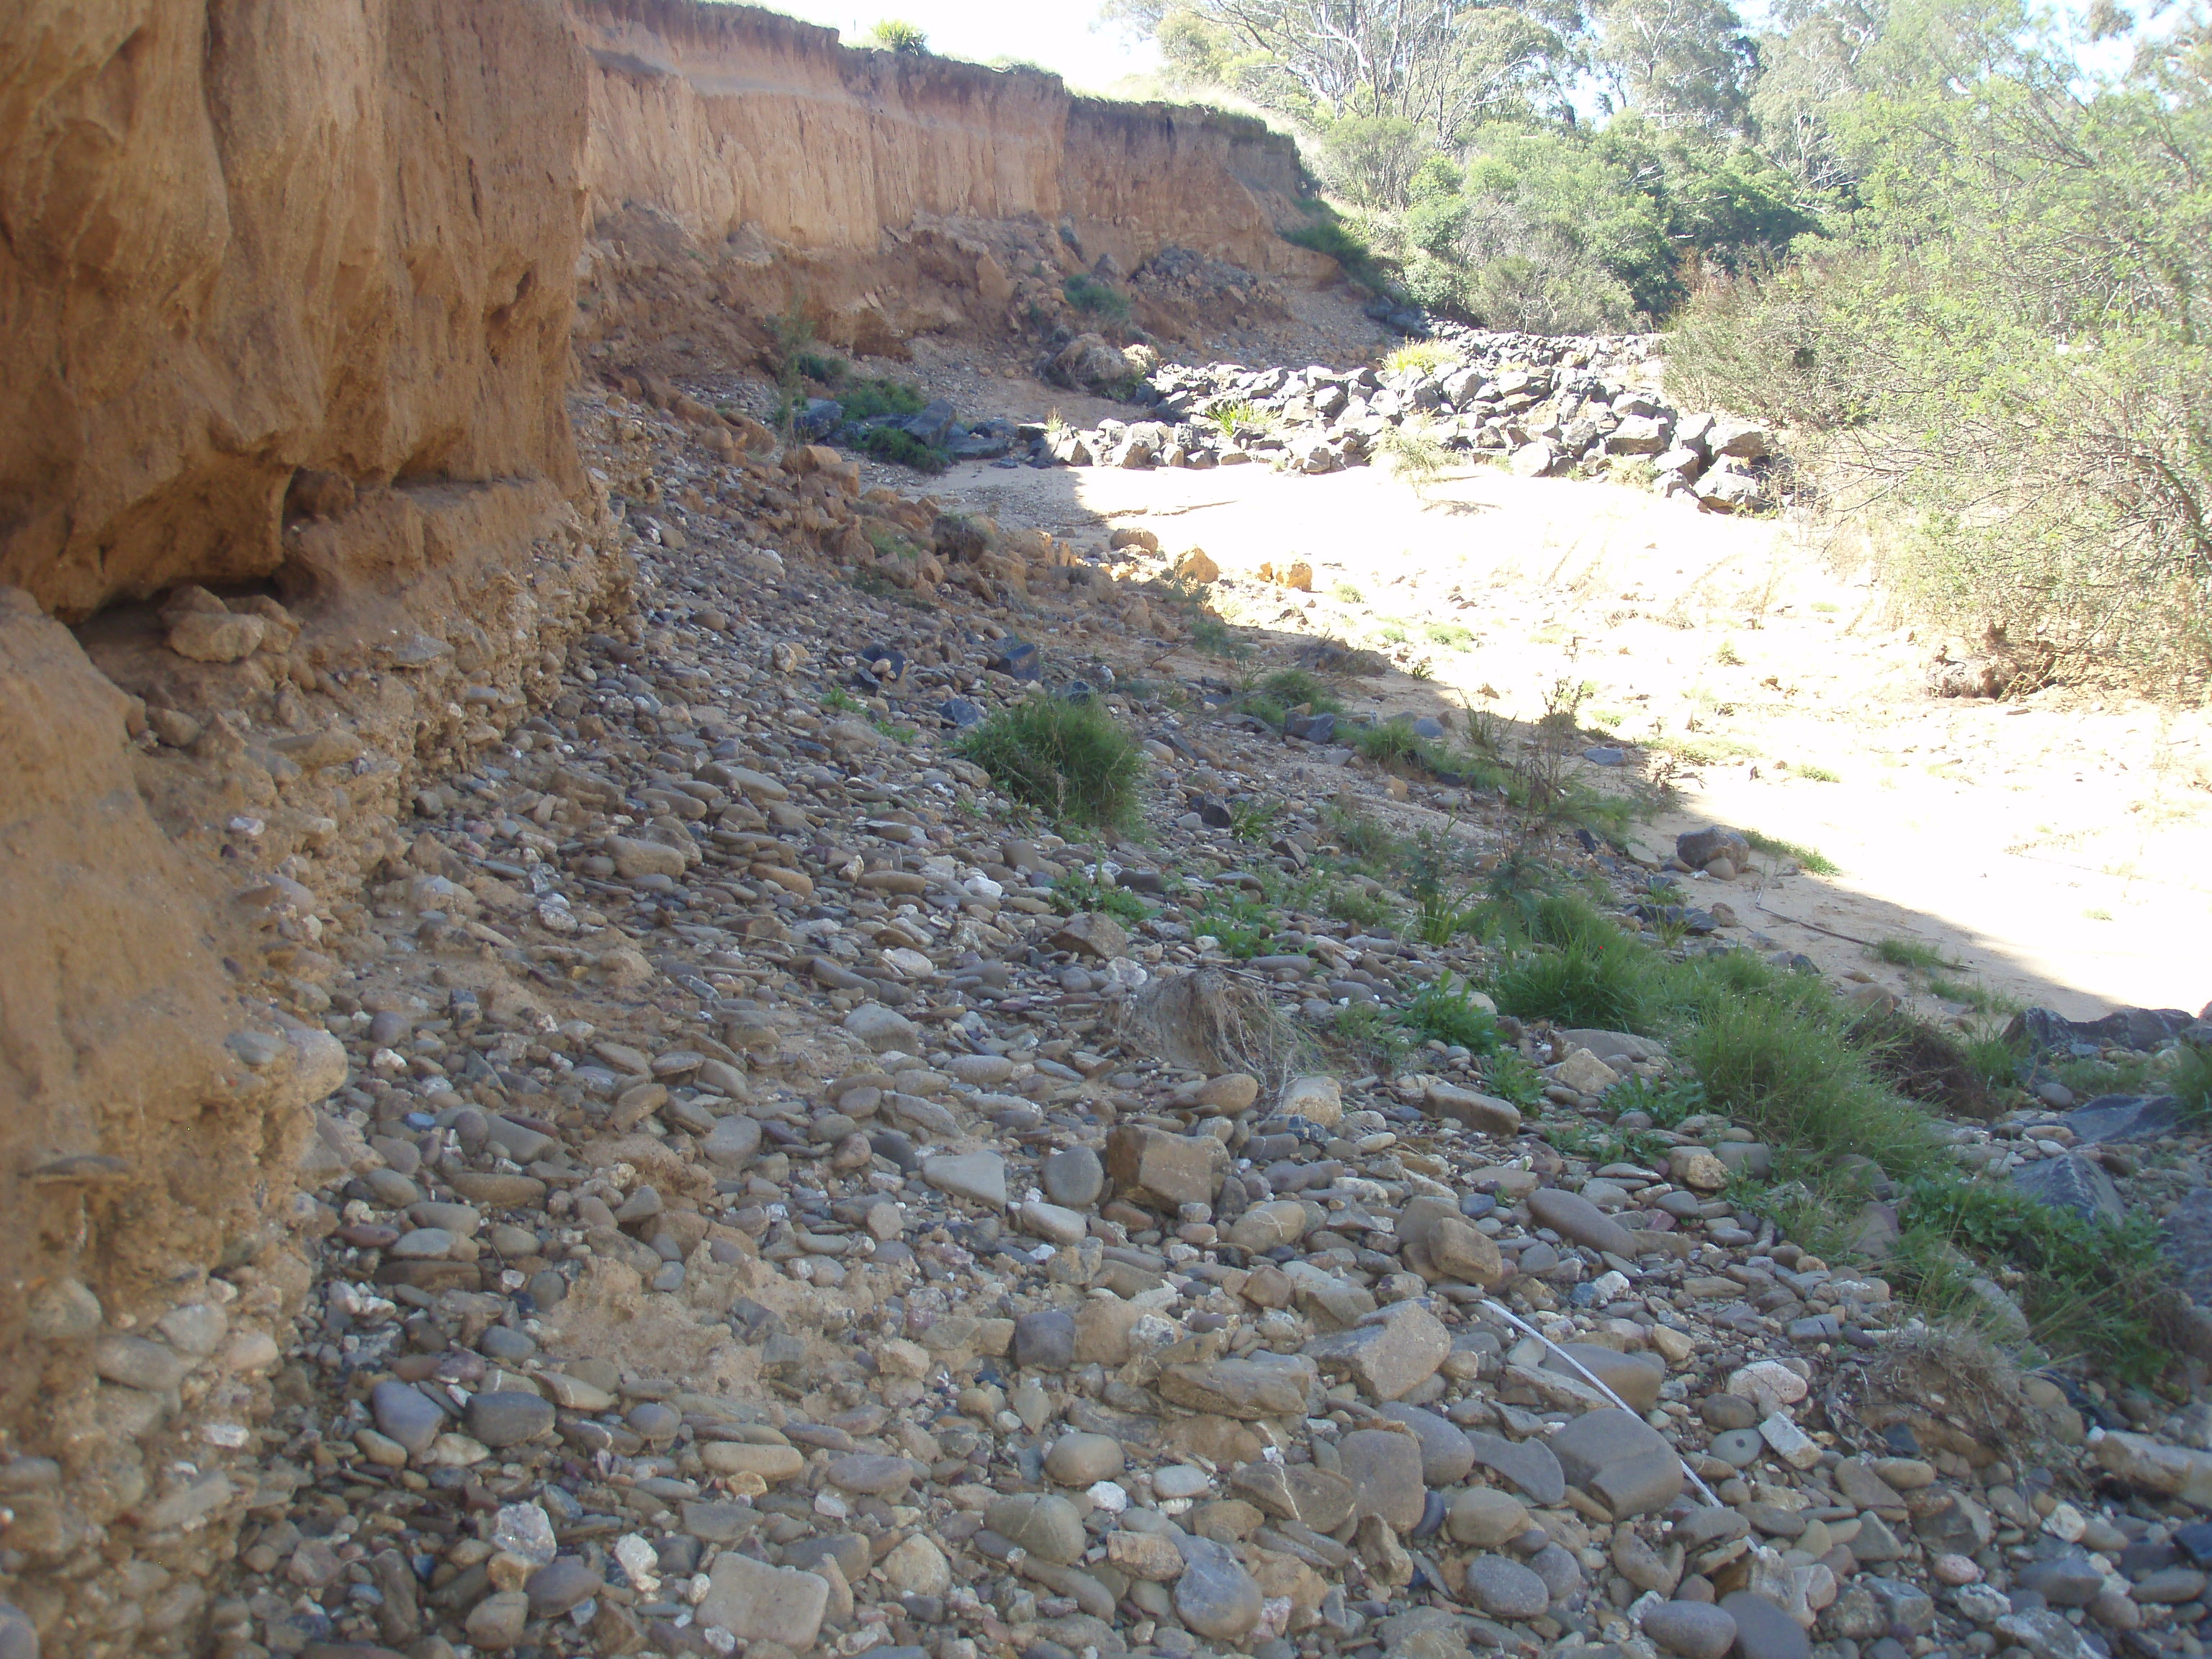 View of erosion wall and a groin rock wall